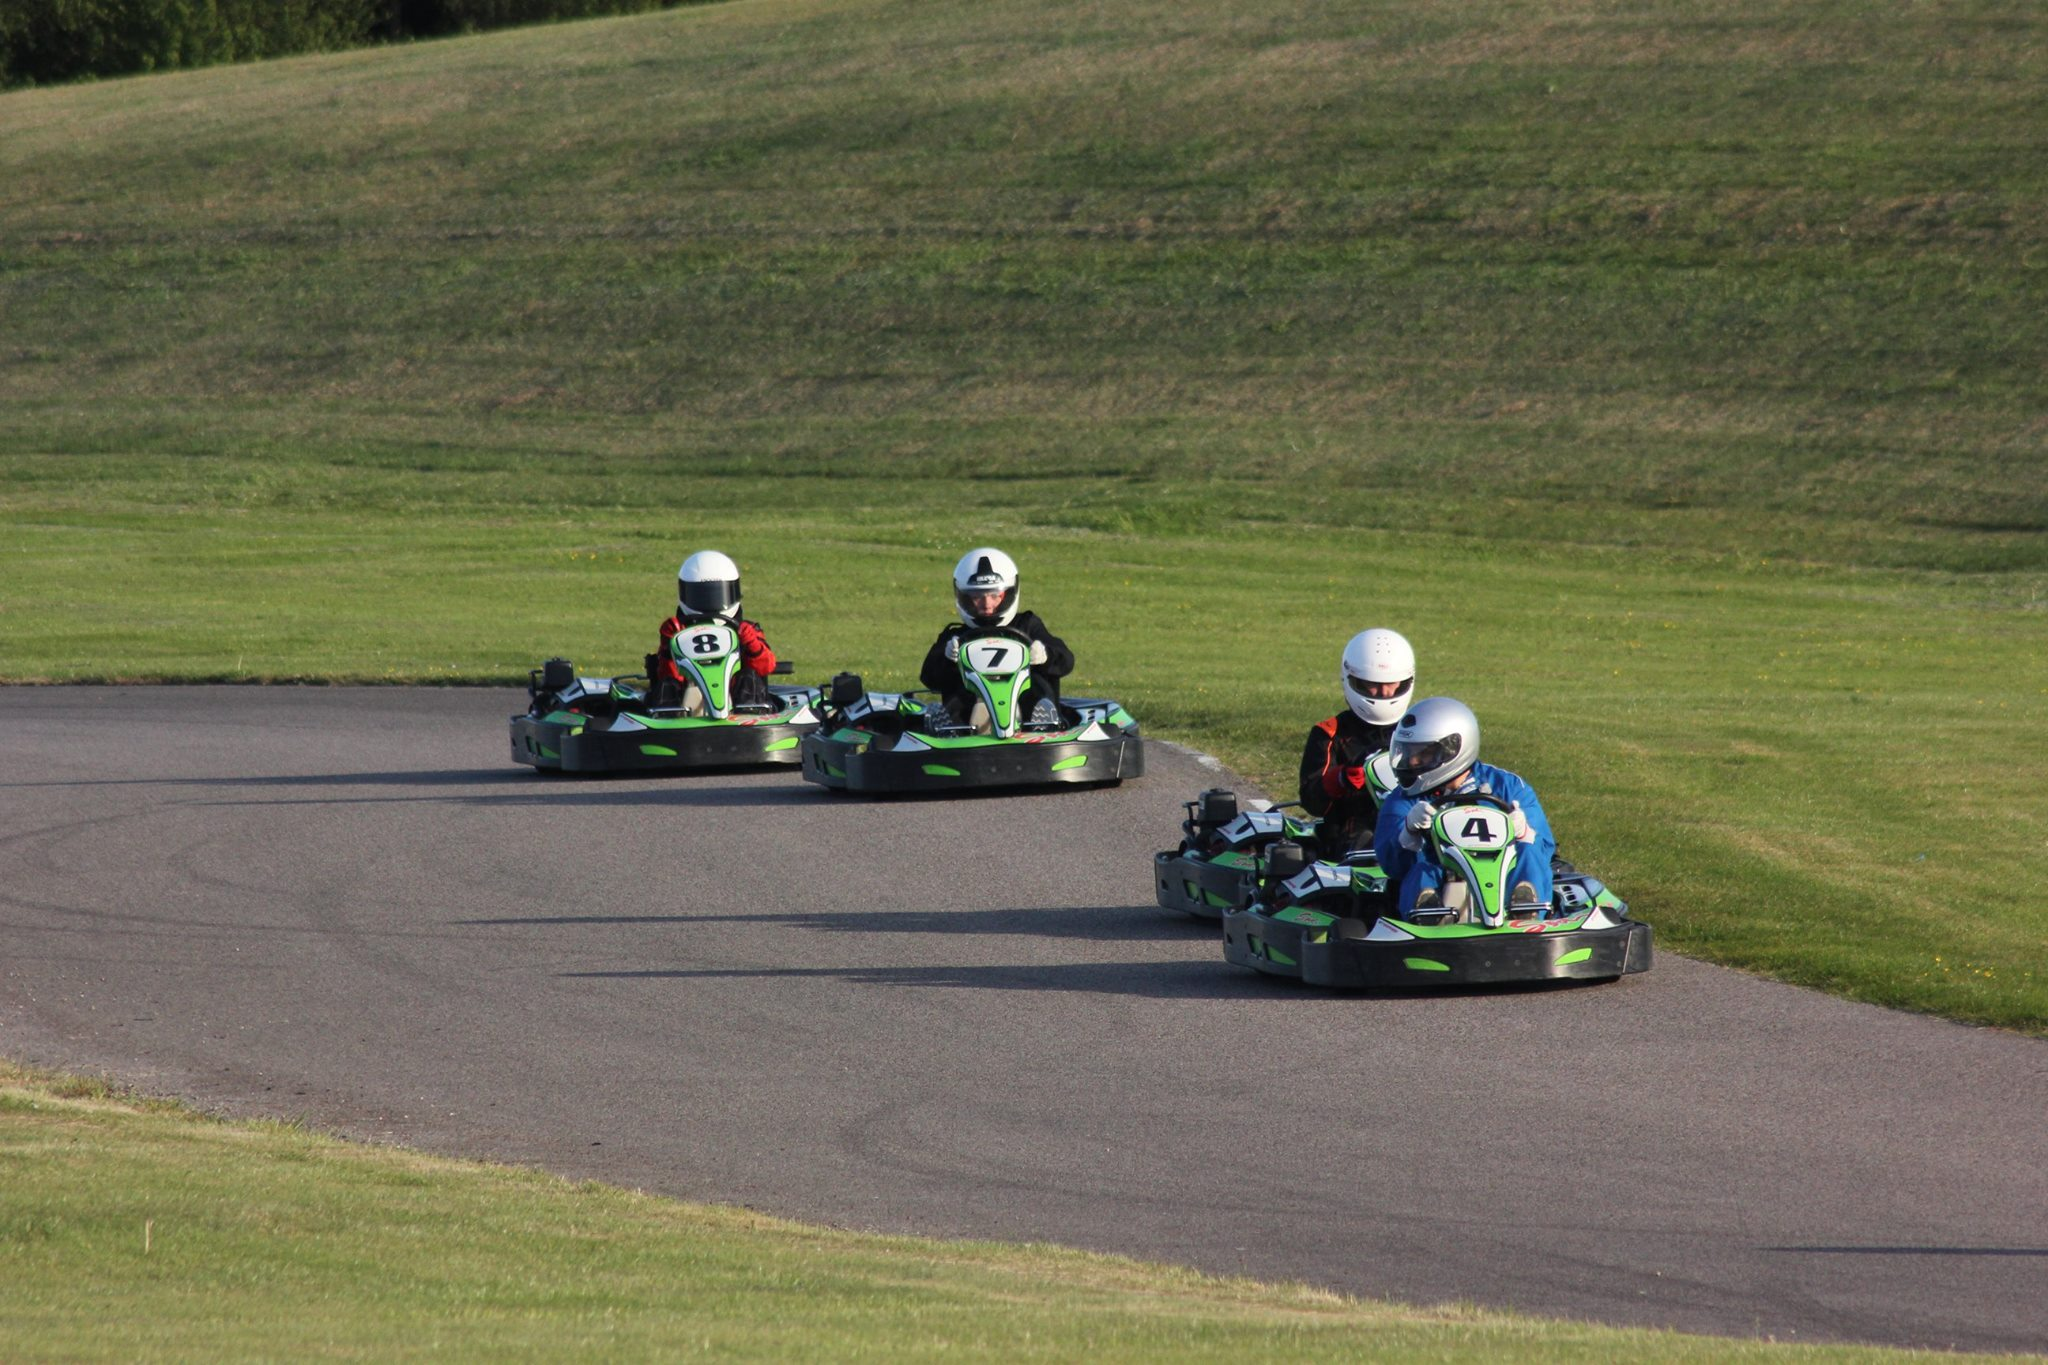 Go Karting Racing down the Back Straight at Sutton Circuit in Leicestershire